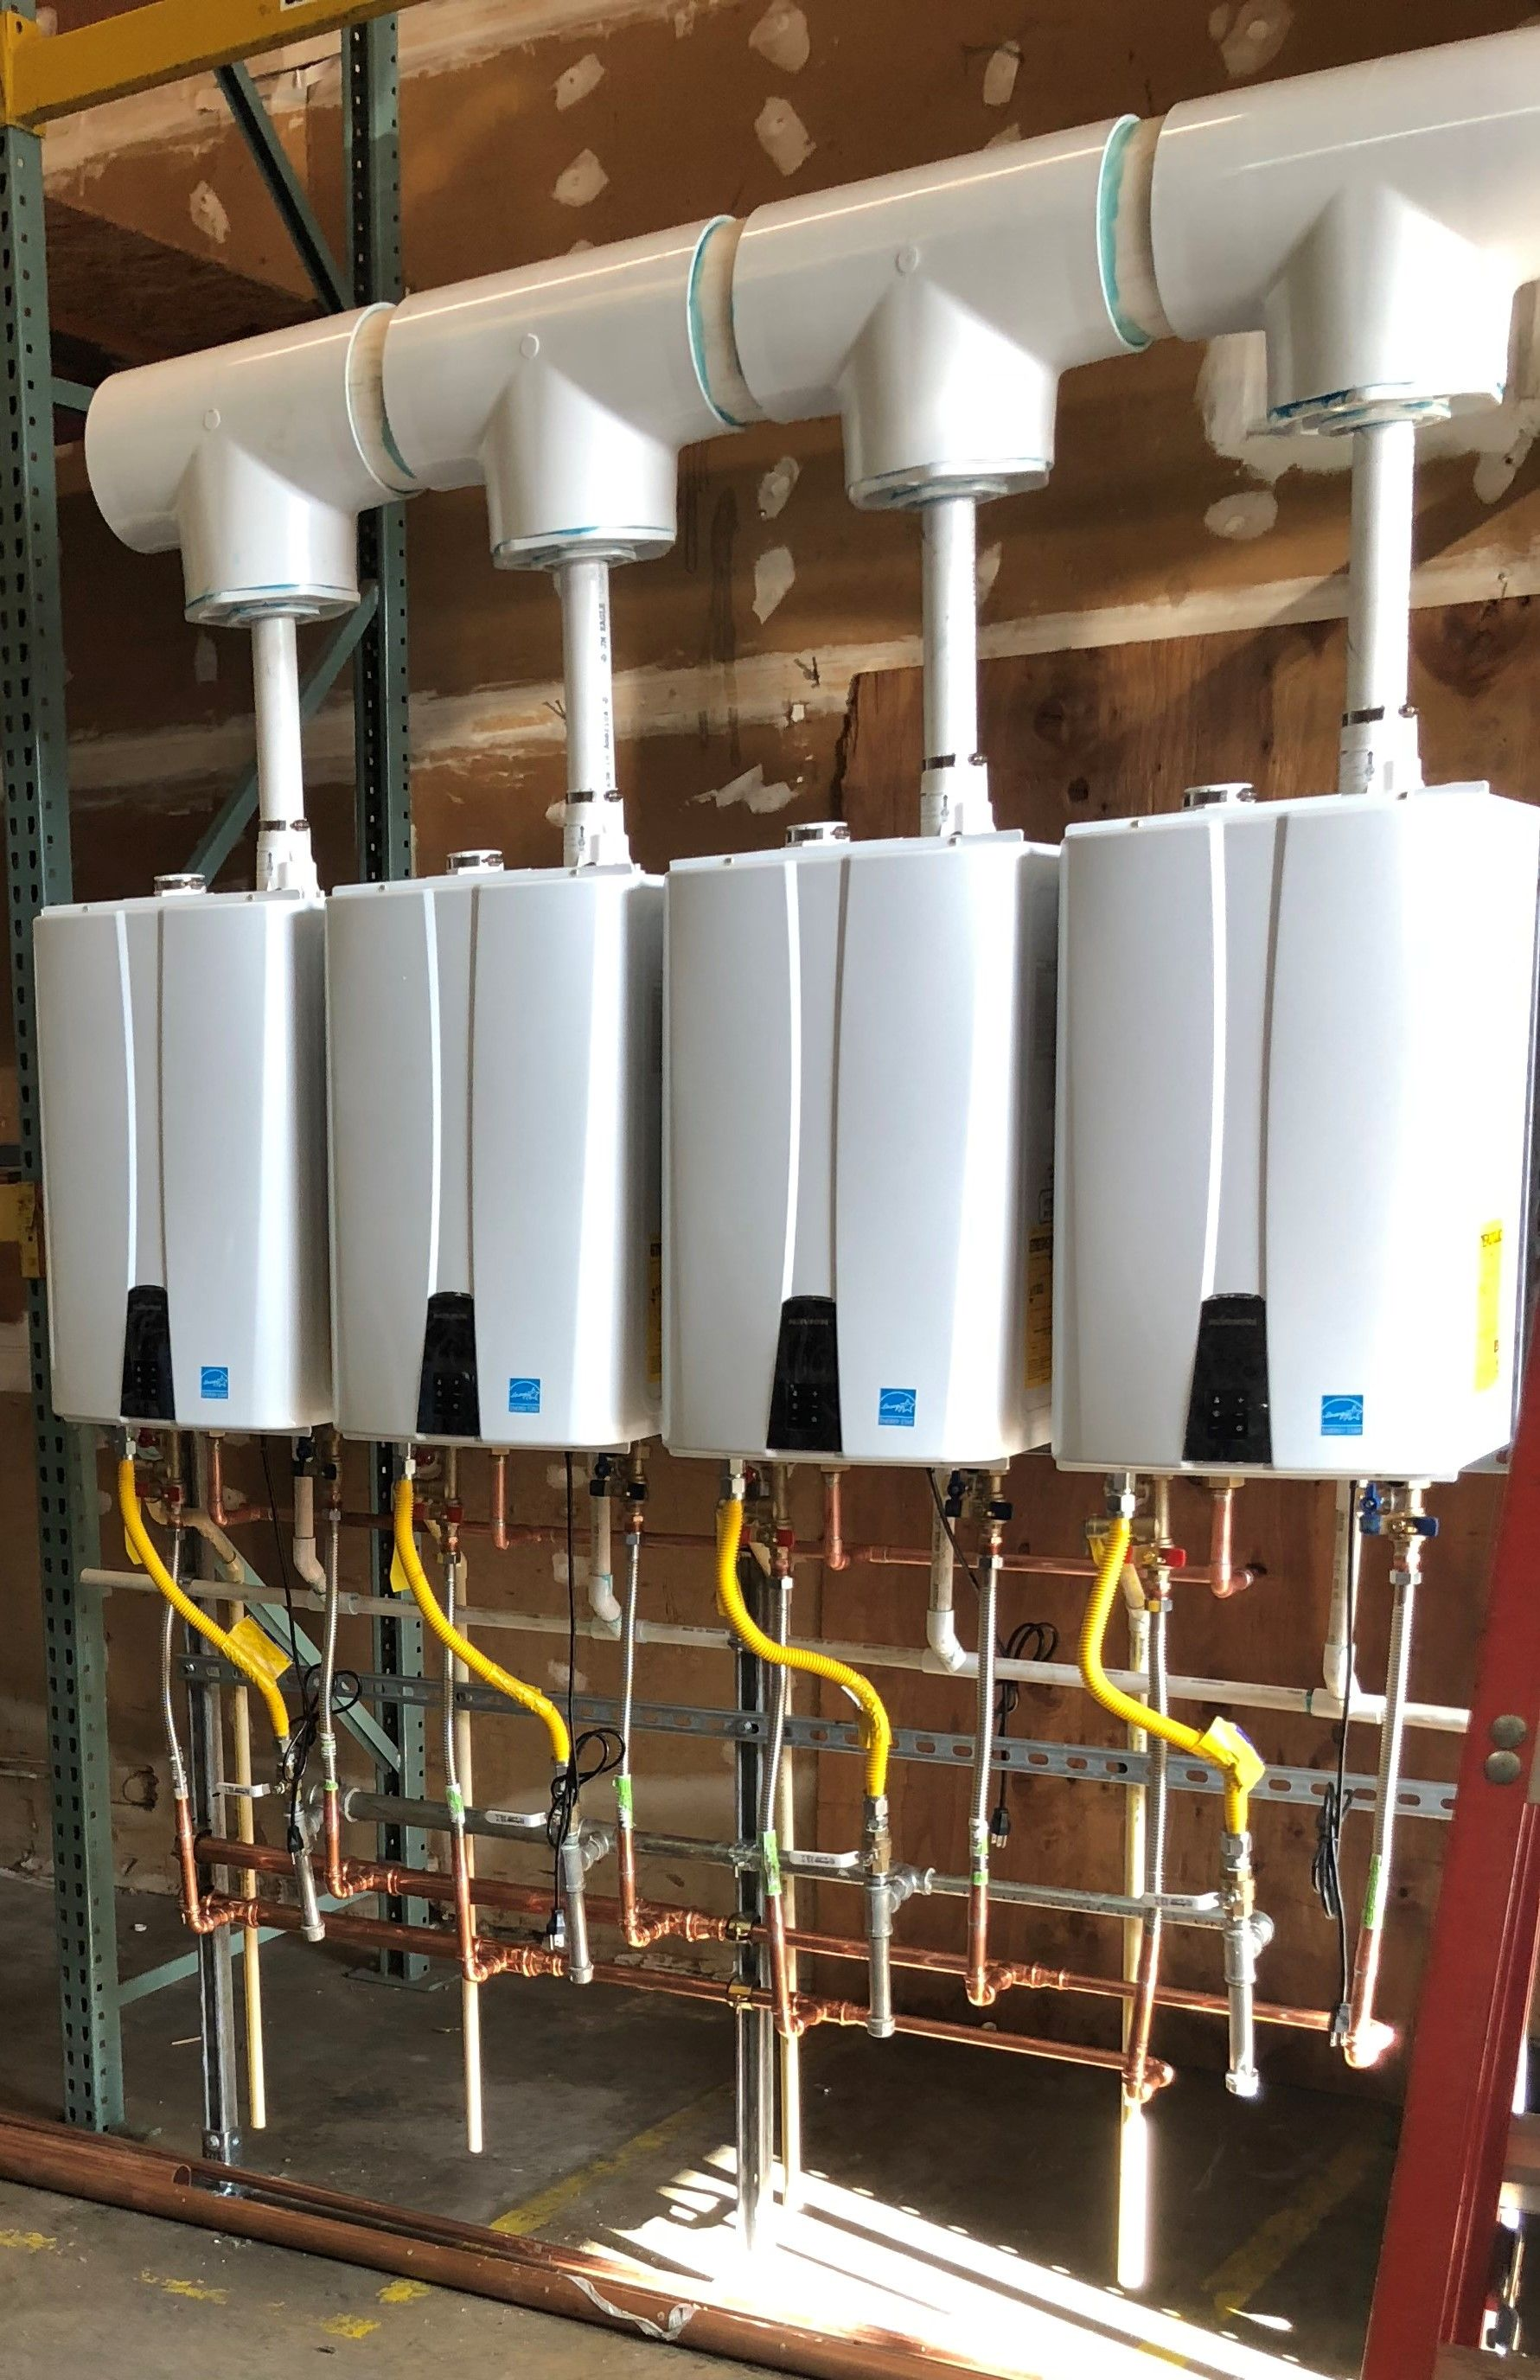 Four tankless water heaters in a row.